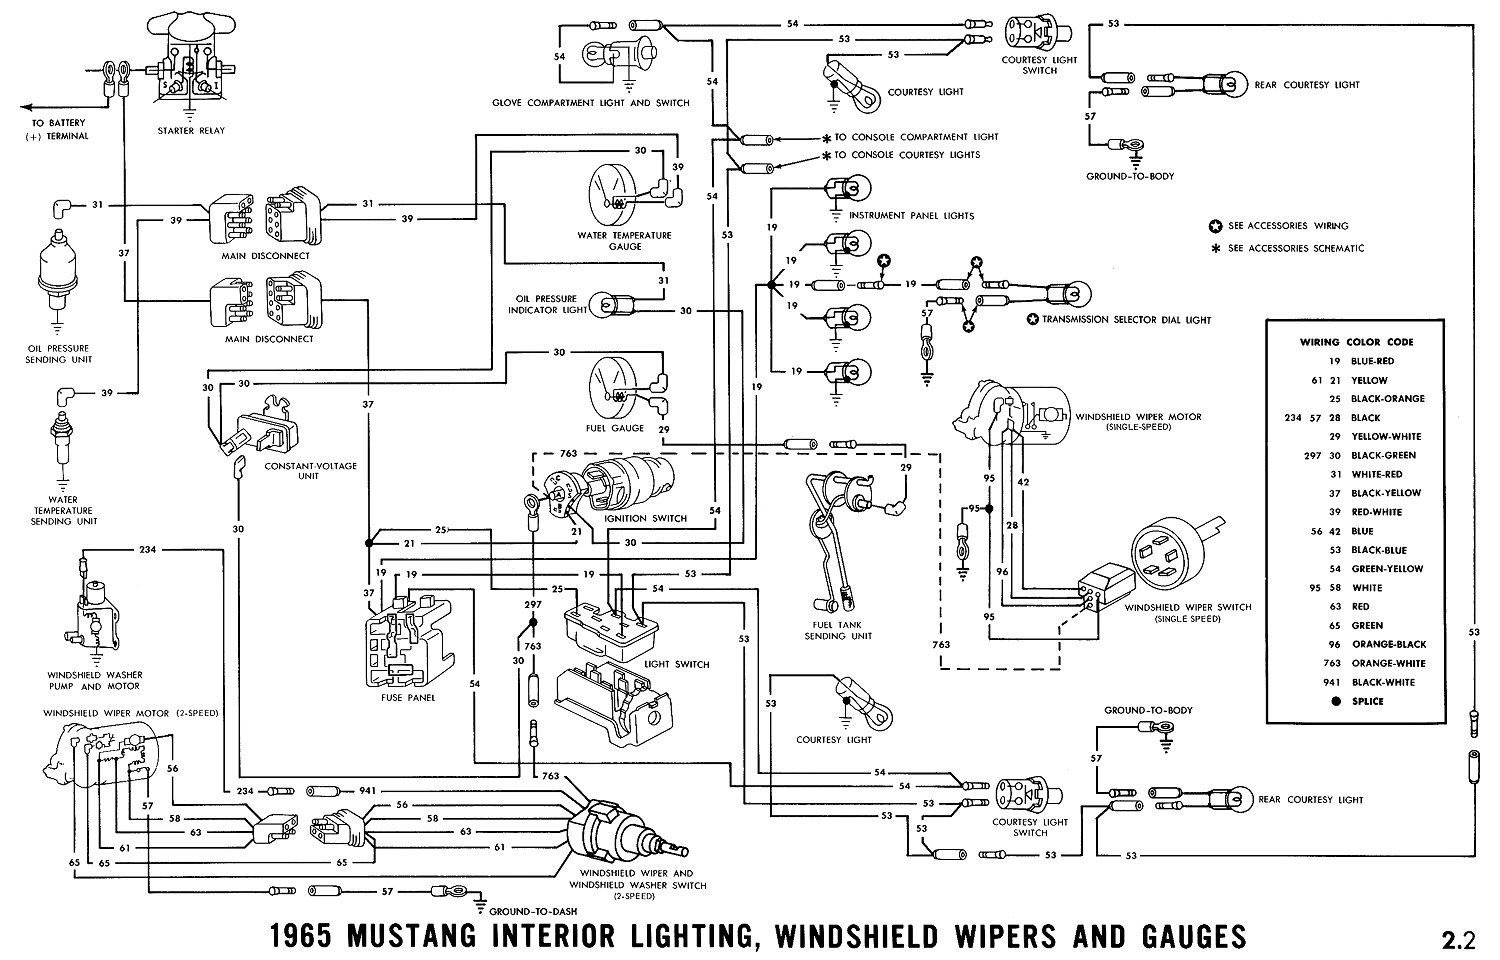 1965 mustang dash wire harness - wiring diagram range-cloud-a -  range-cloud-a.ristruttura4-0.it  ristruttura4-0.it